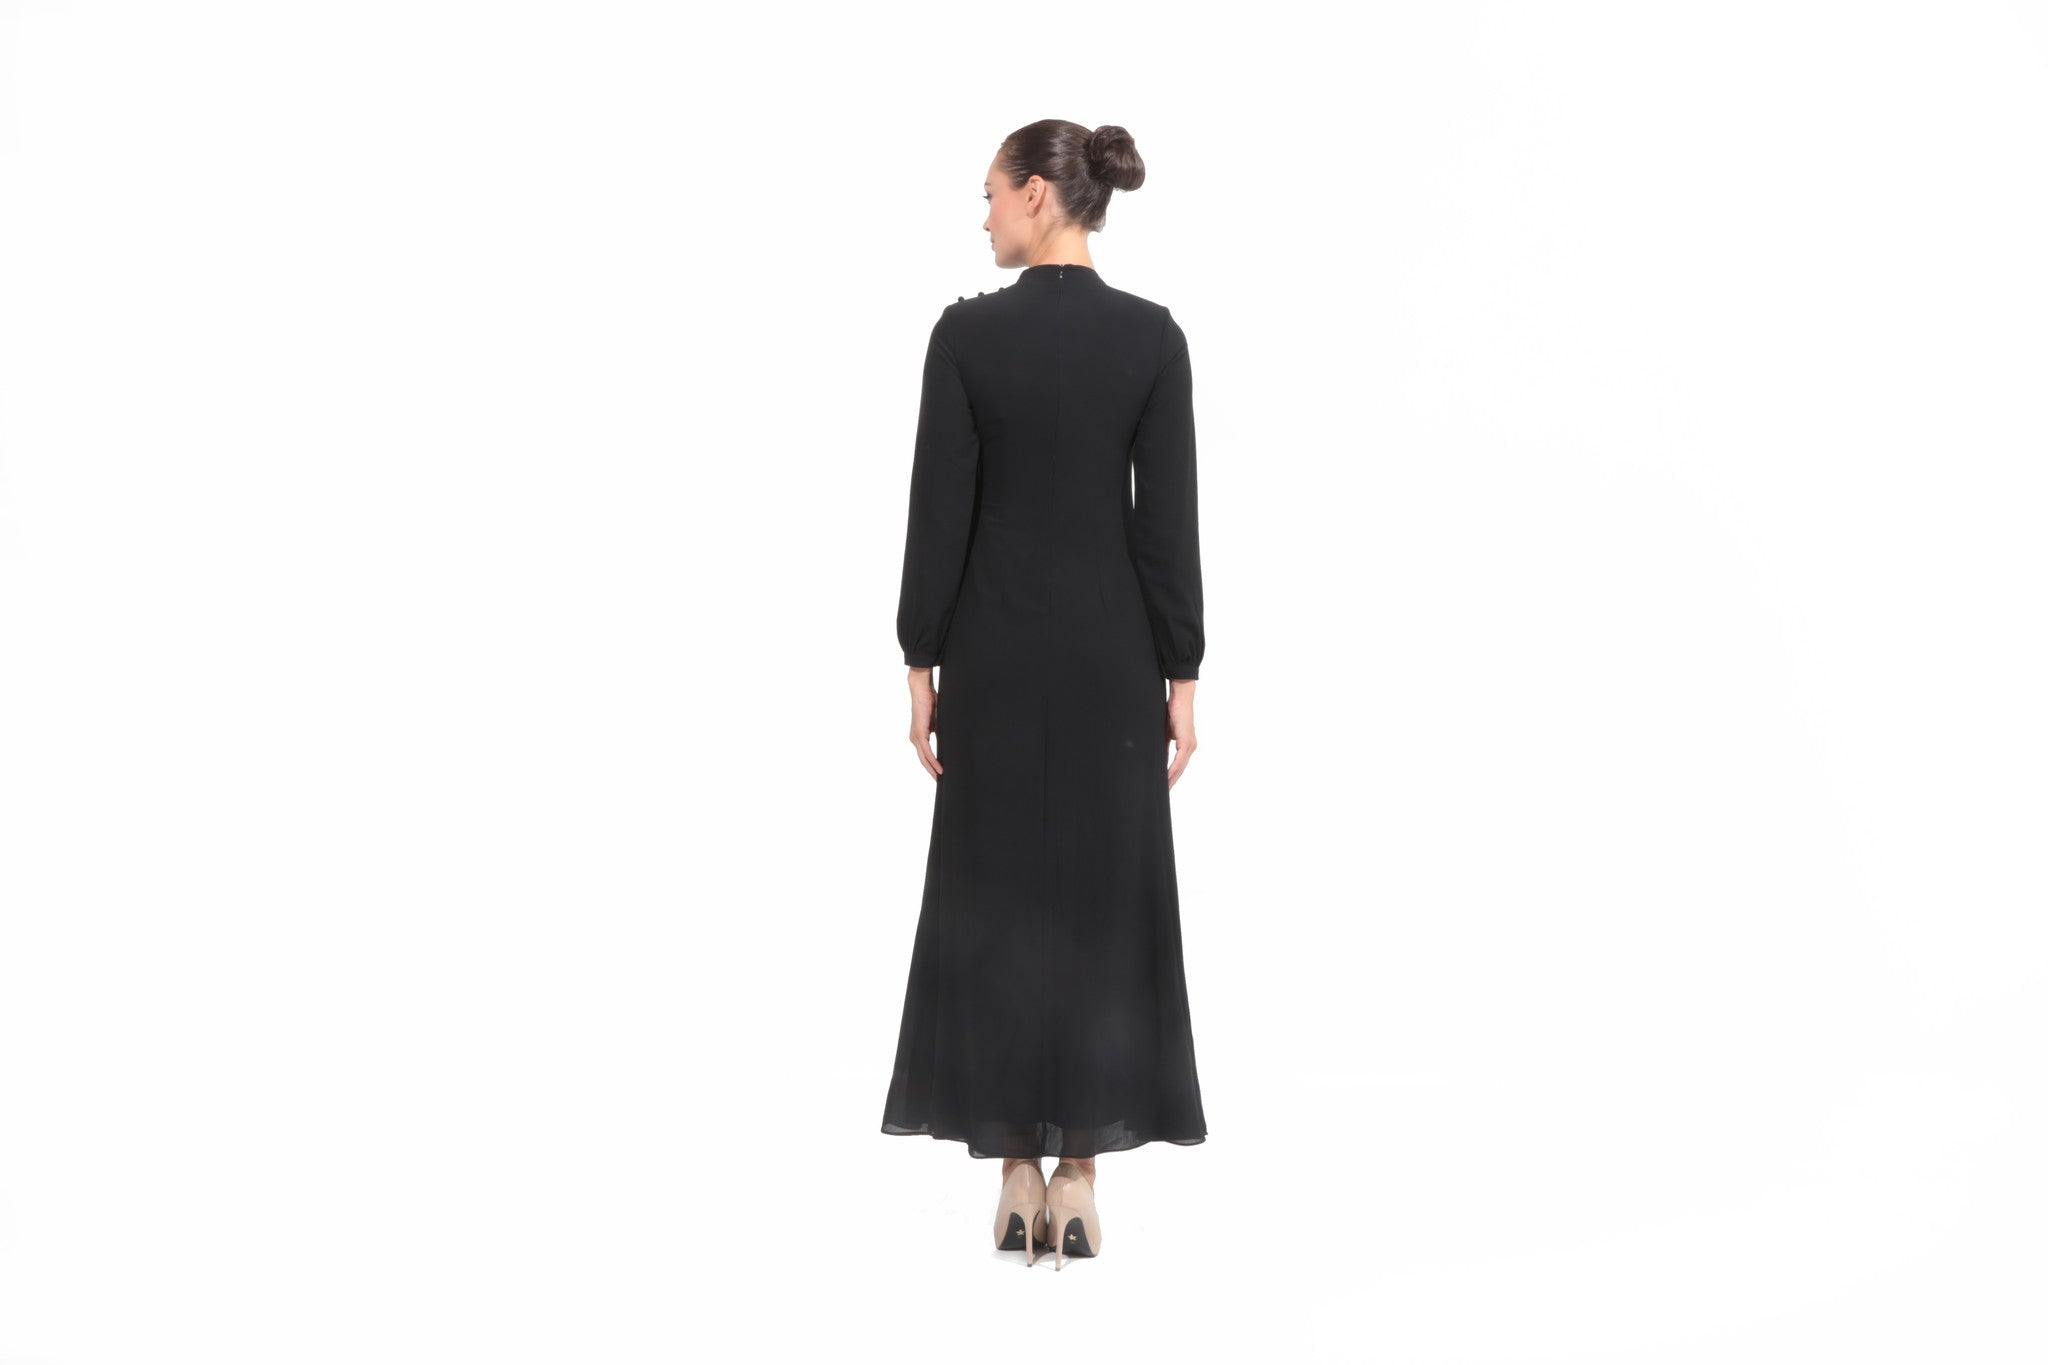 Chiffon Dress with Drape in Black